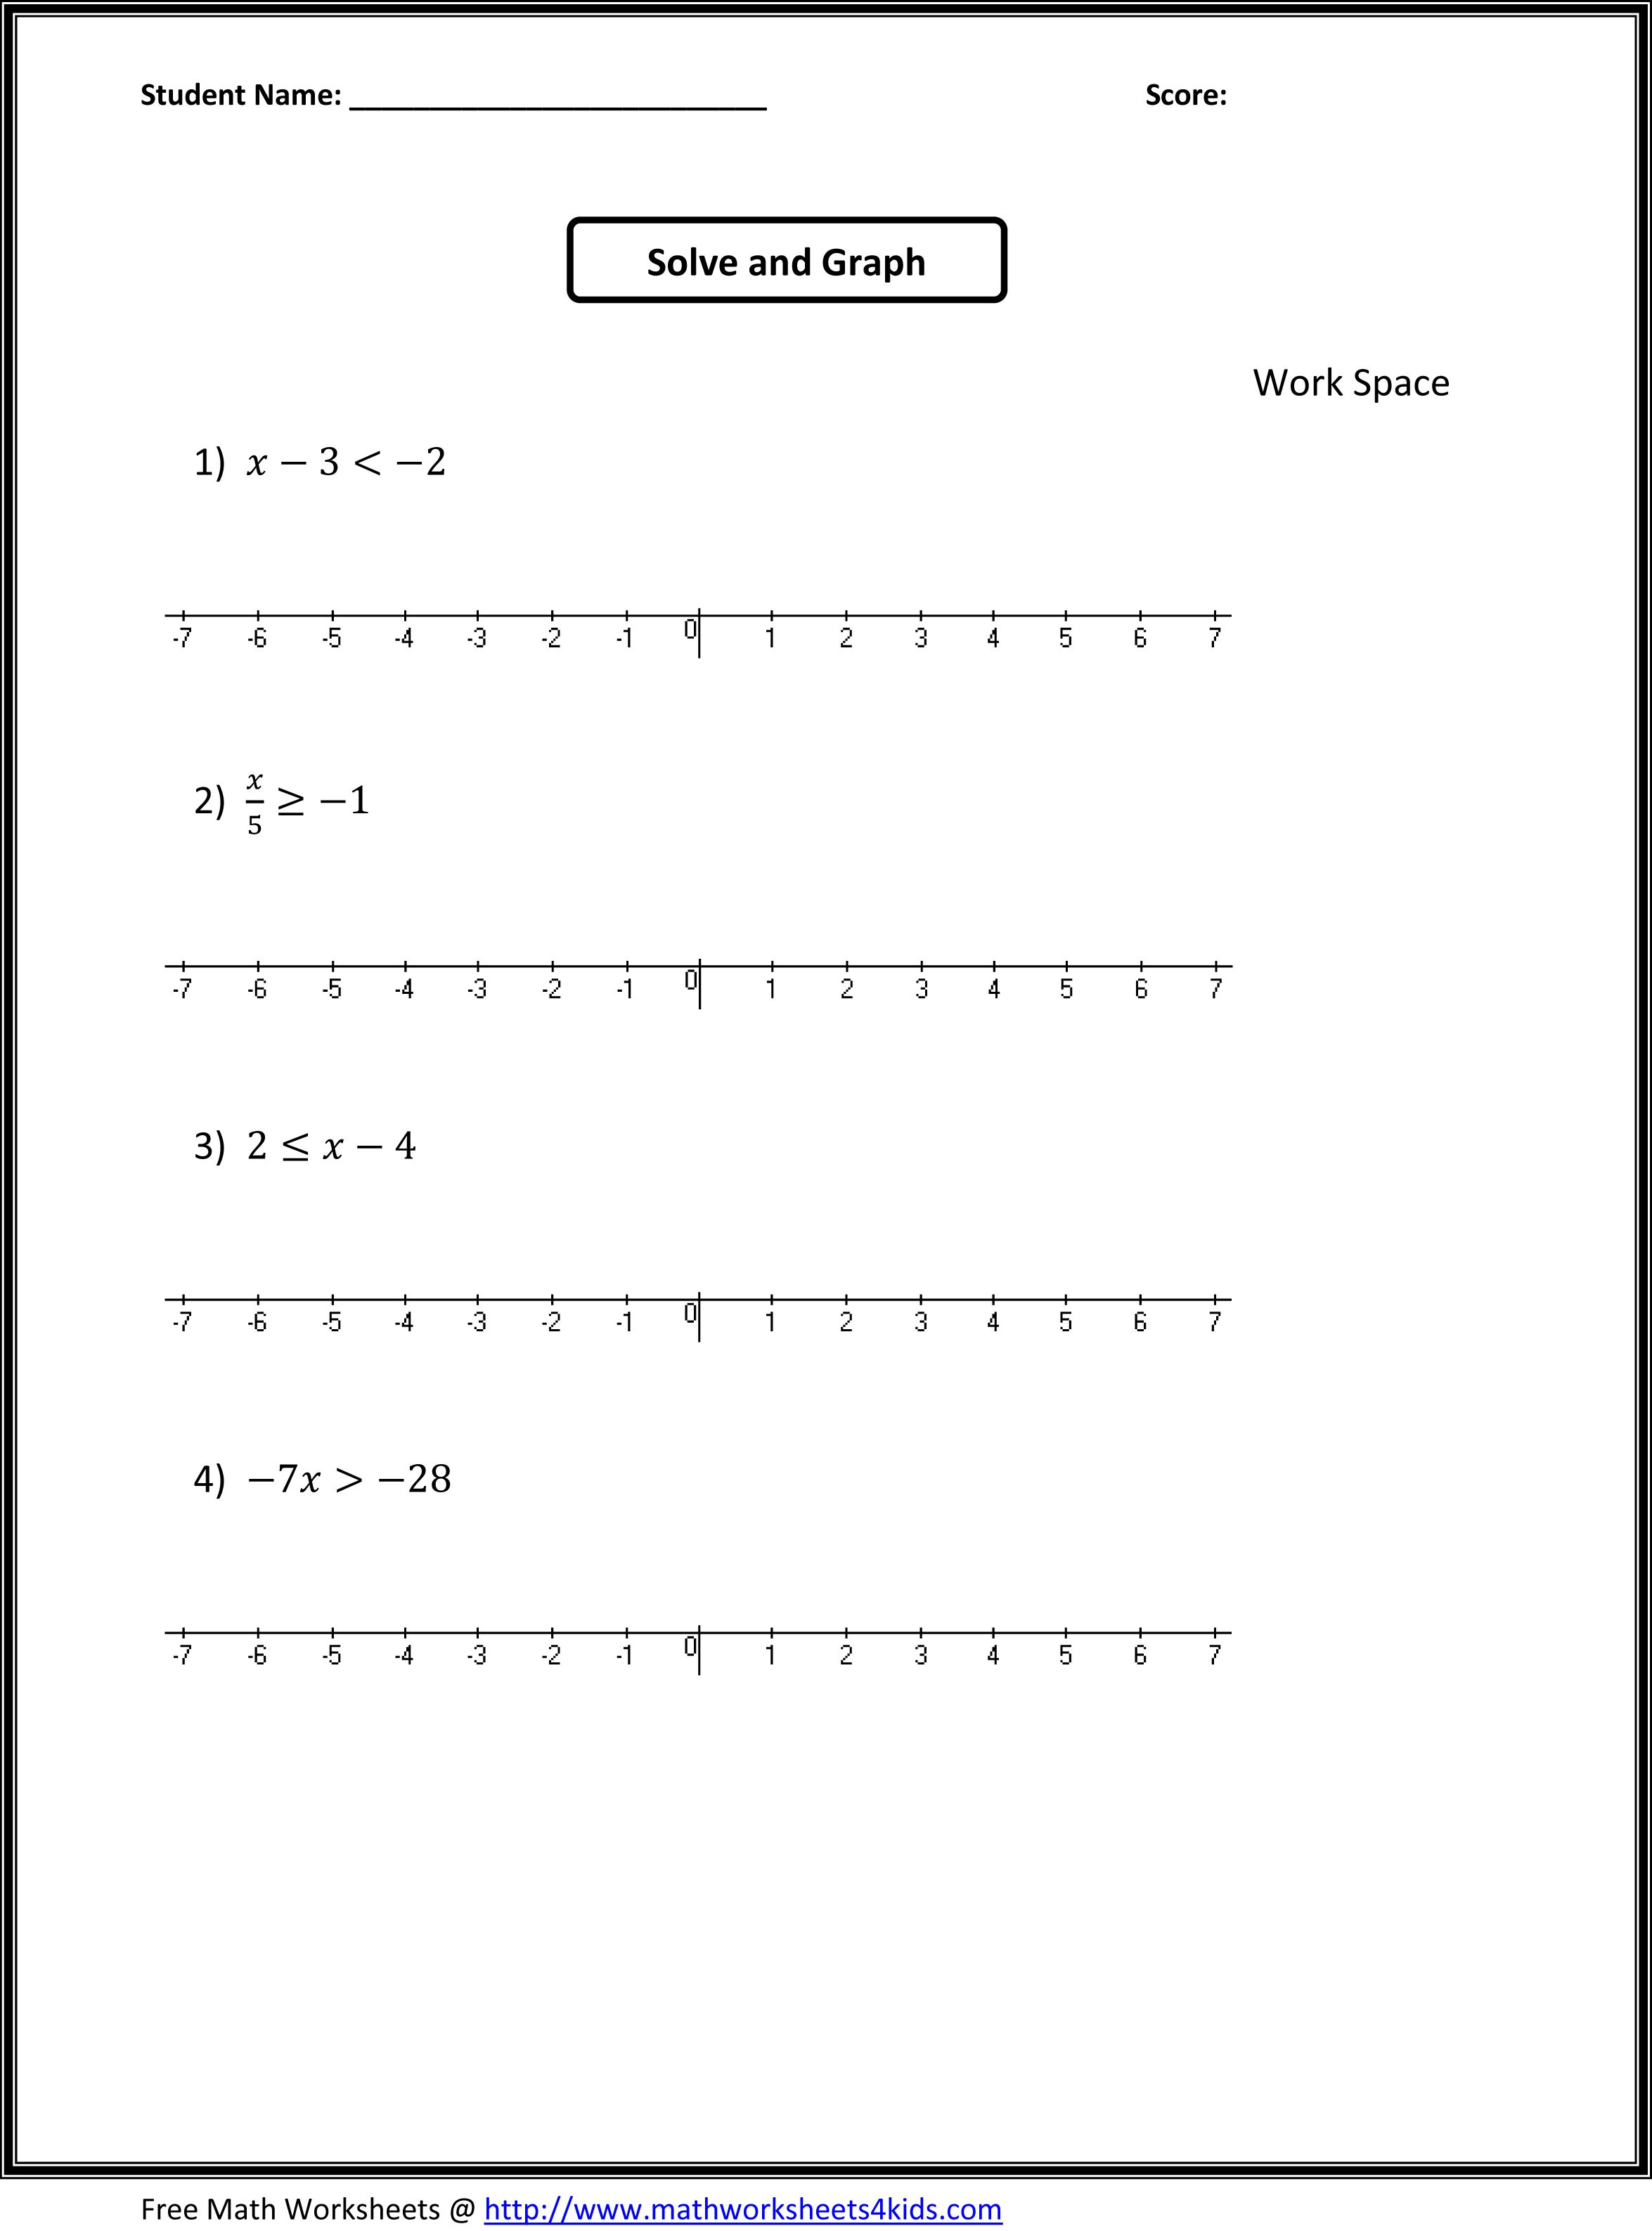 Solving Word Problems in Algebra is easy if you know the key steps – Equations and Inequalities Worksheet